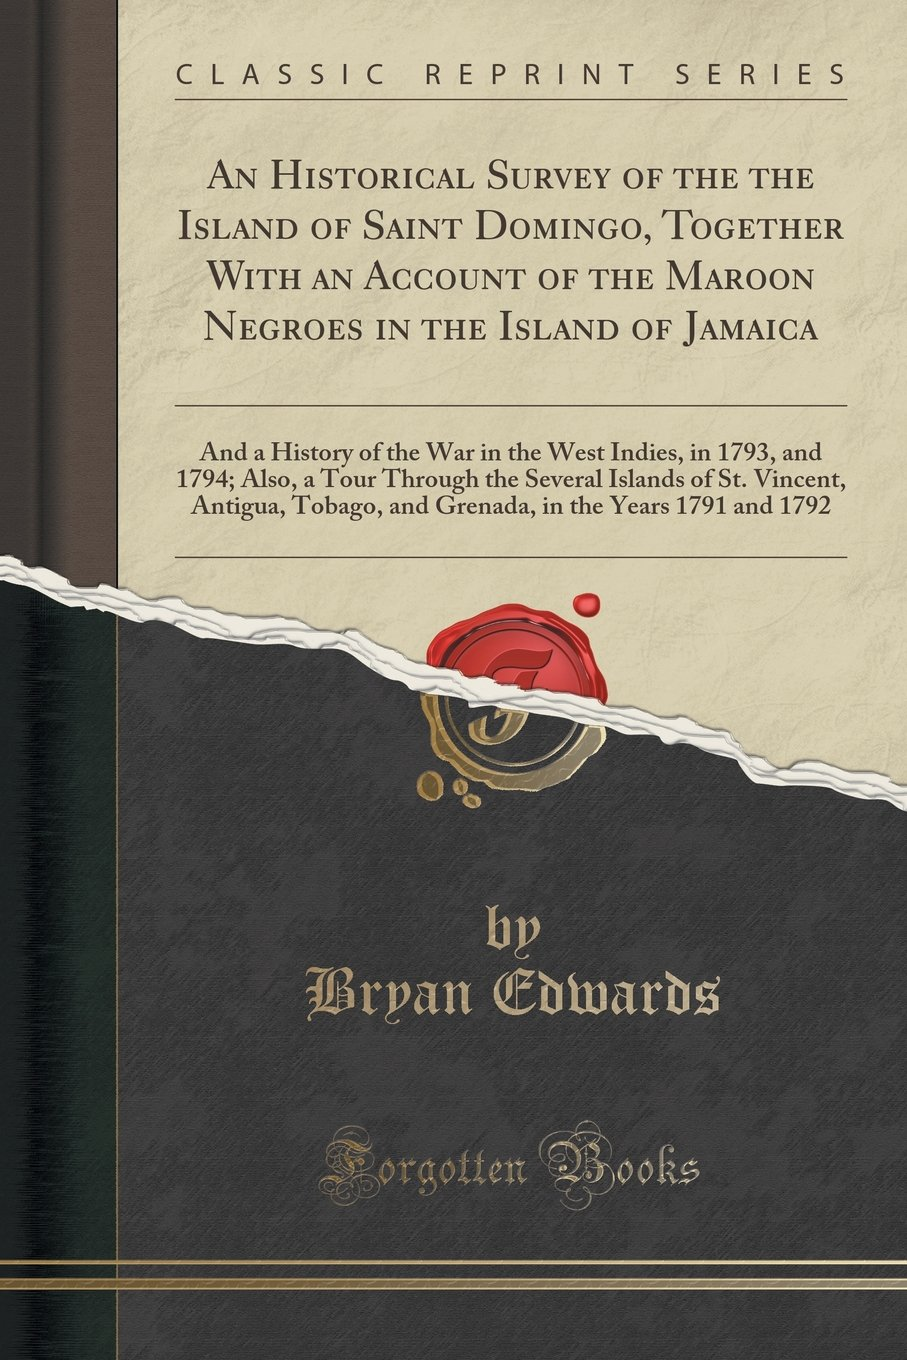 An Historical Survey of the the Island of Saint Domingo, Together with an Account of the Maroon Negroes in the Island of Jamaica: And a History of the ... the Several Islands of St. Vincent, Anti